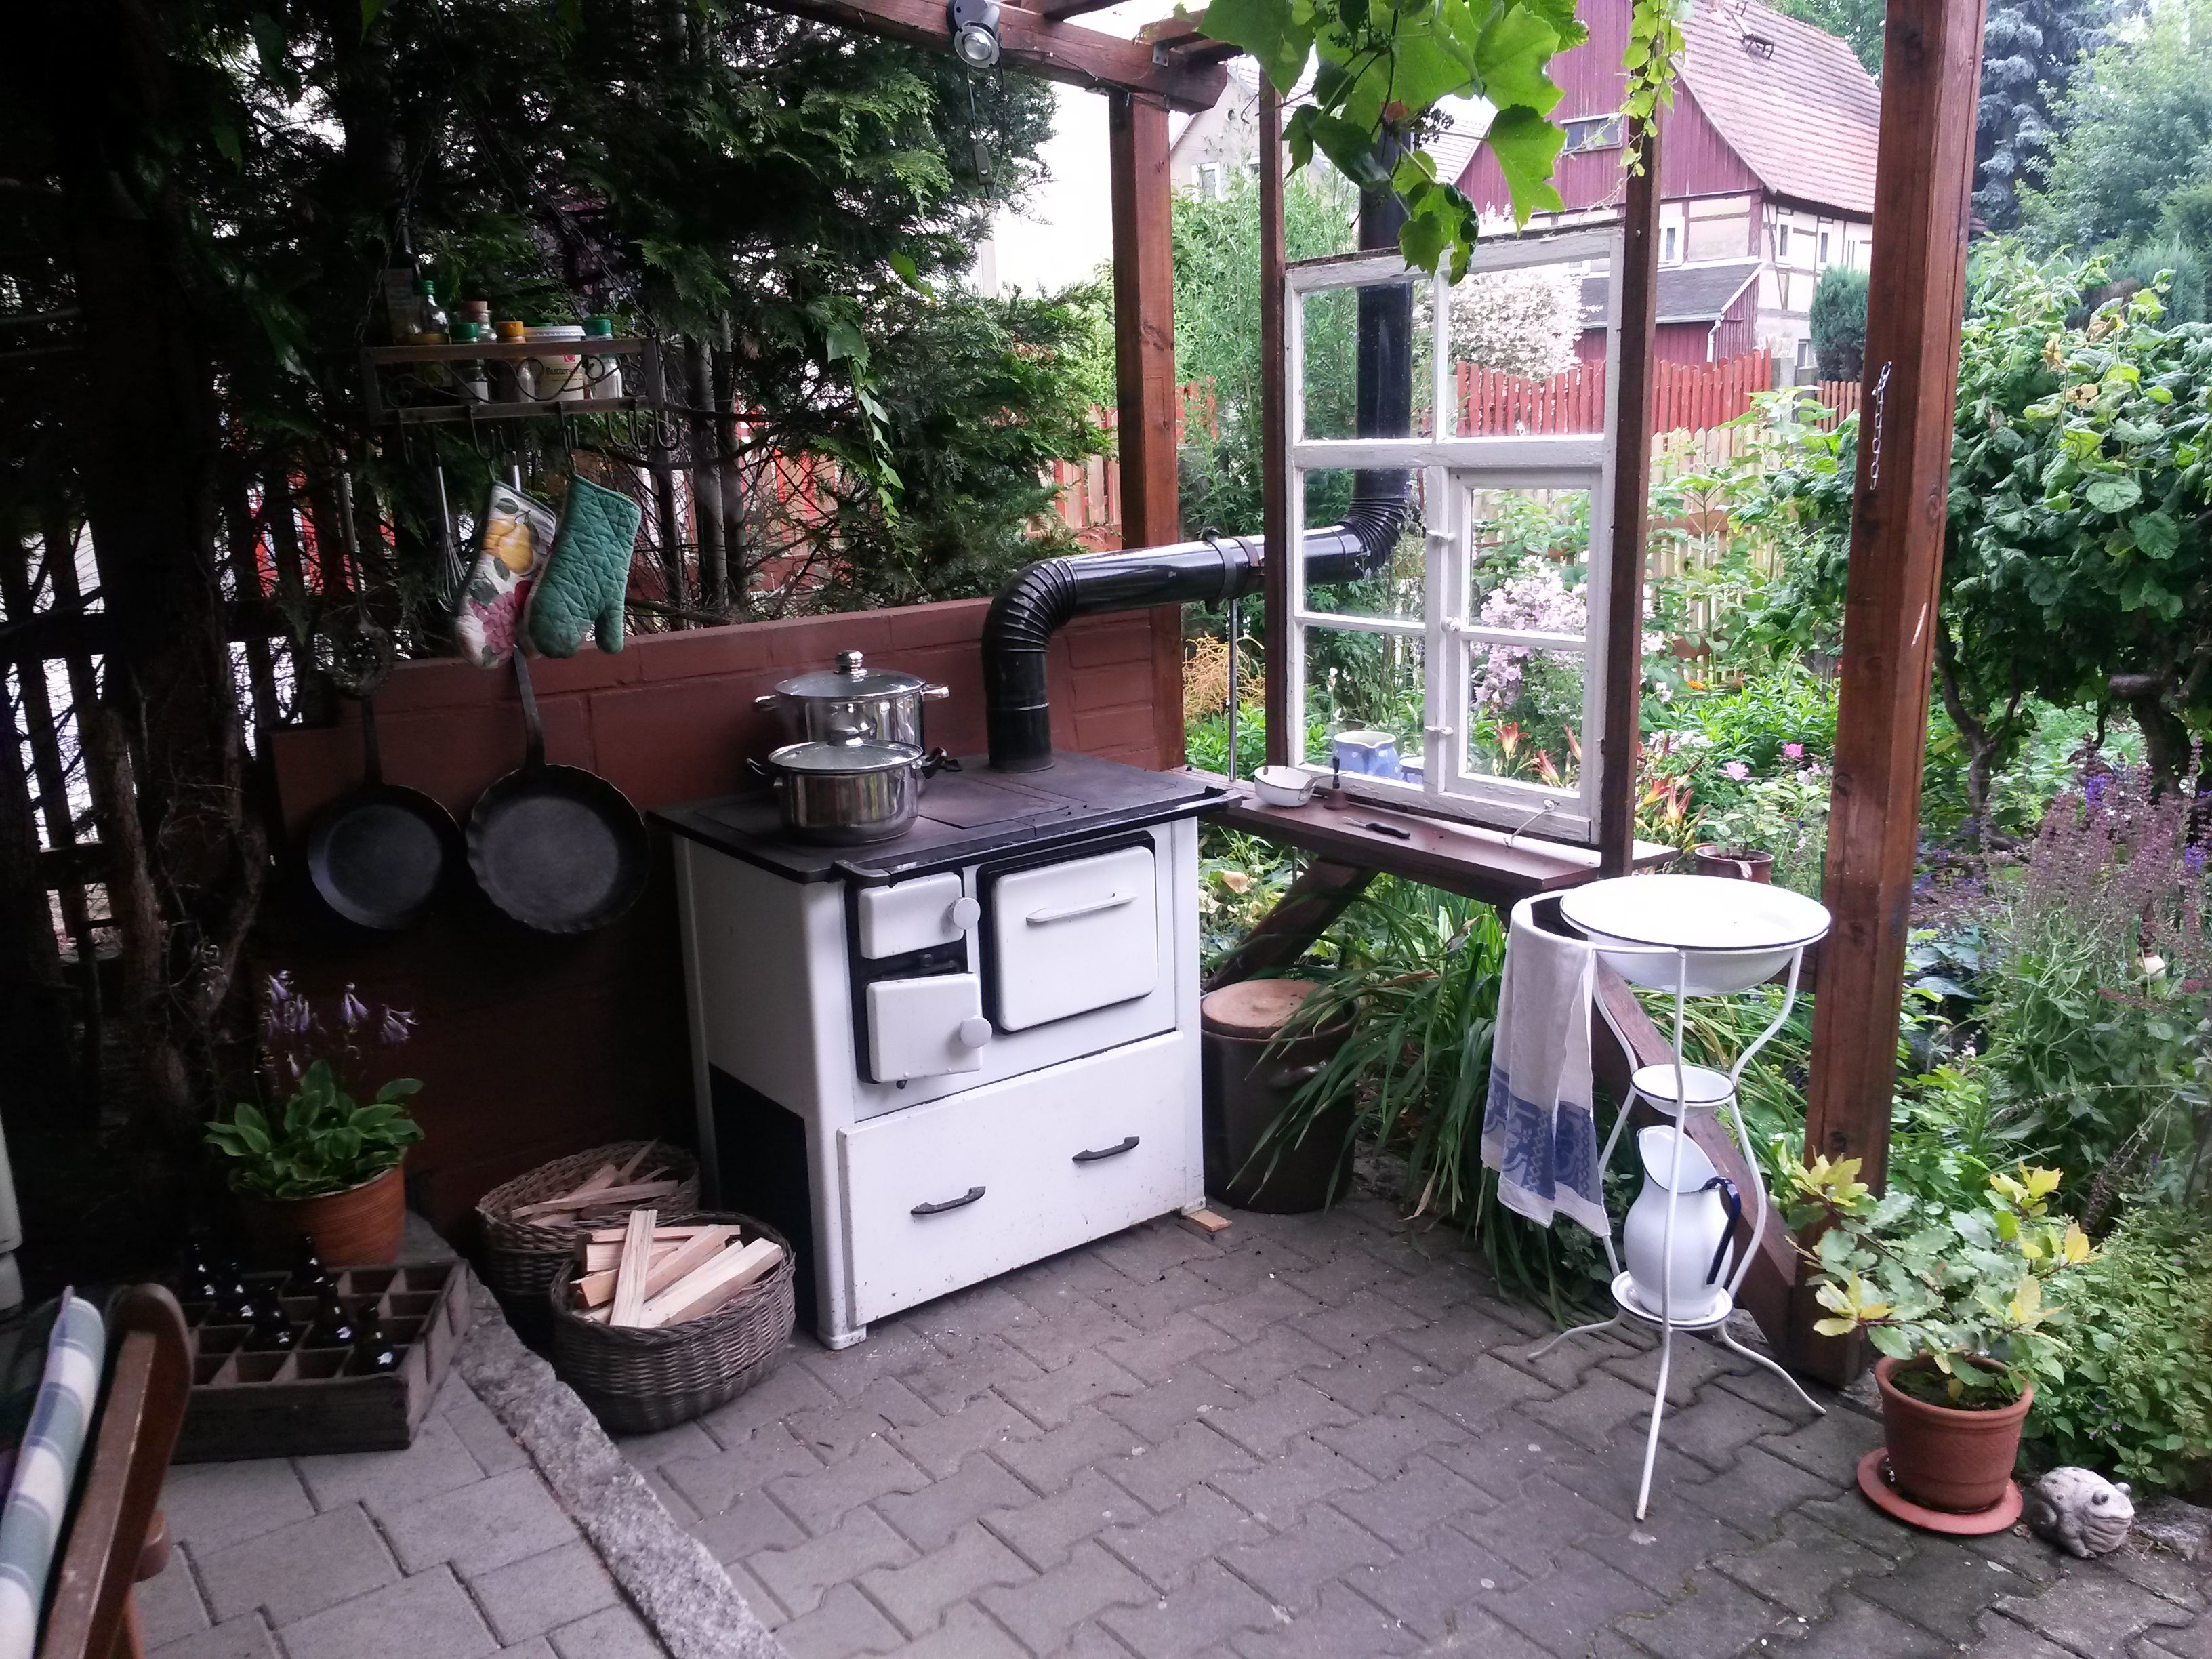 Sesselschoner Waschbar Outdoor Küche Pinterest Must See Pallet Outdoor Dream